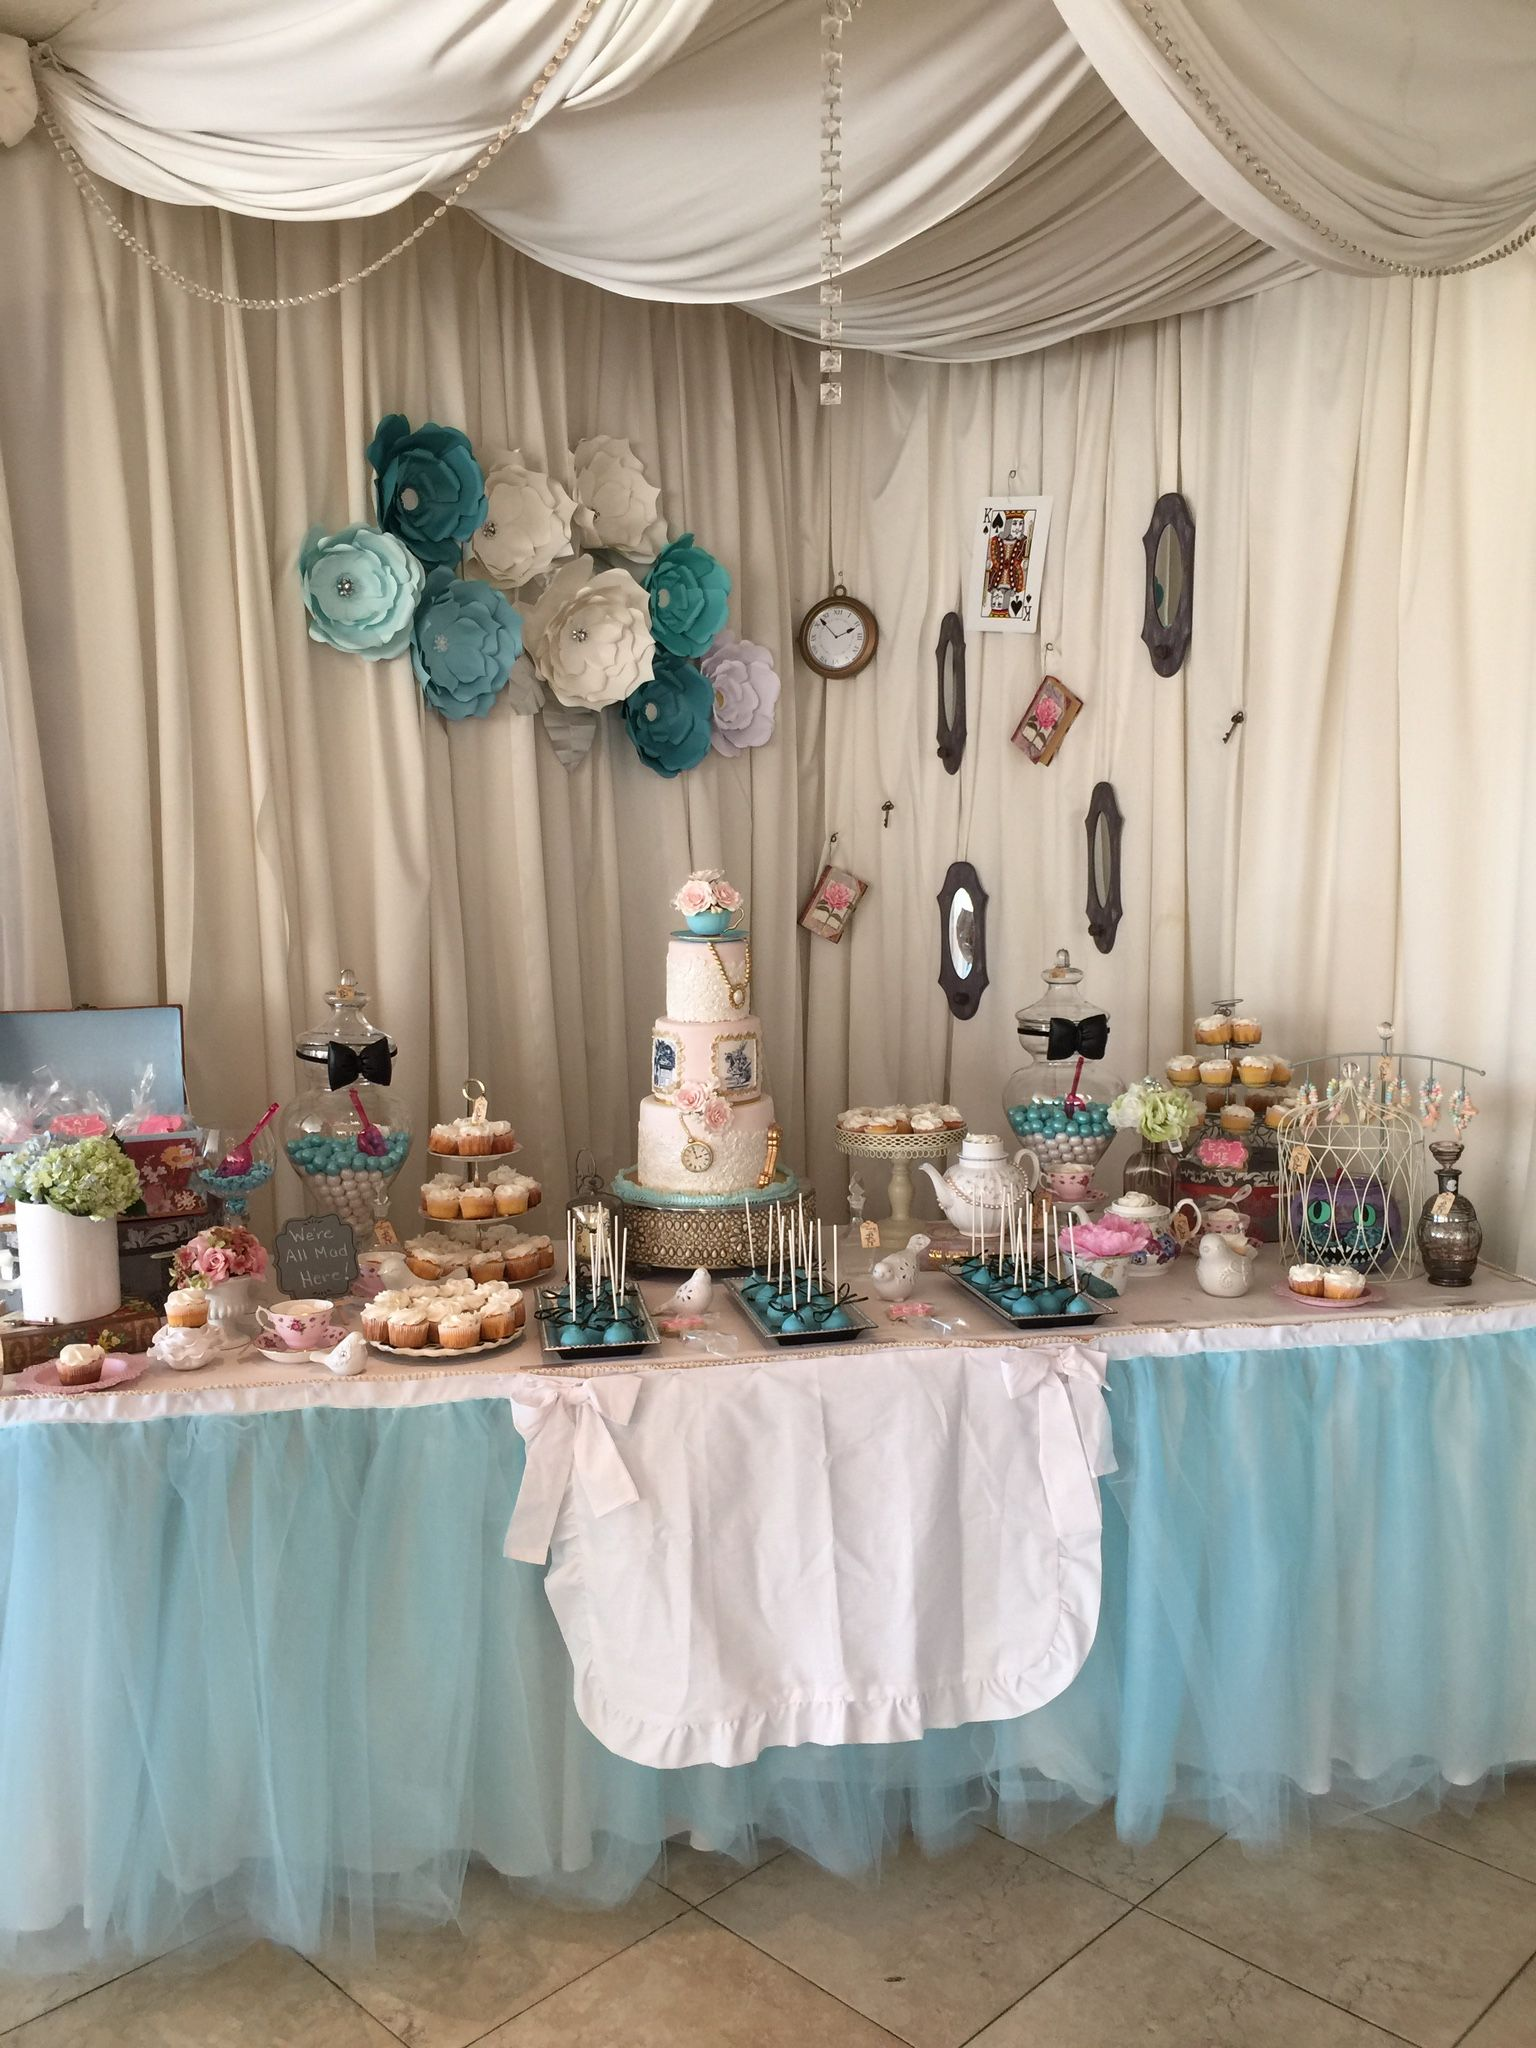 This was the vintage Alice in wonderland first birthday sweets table